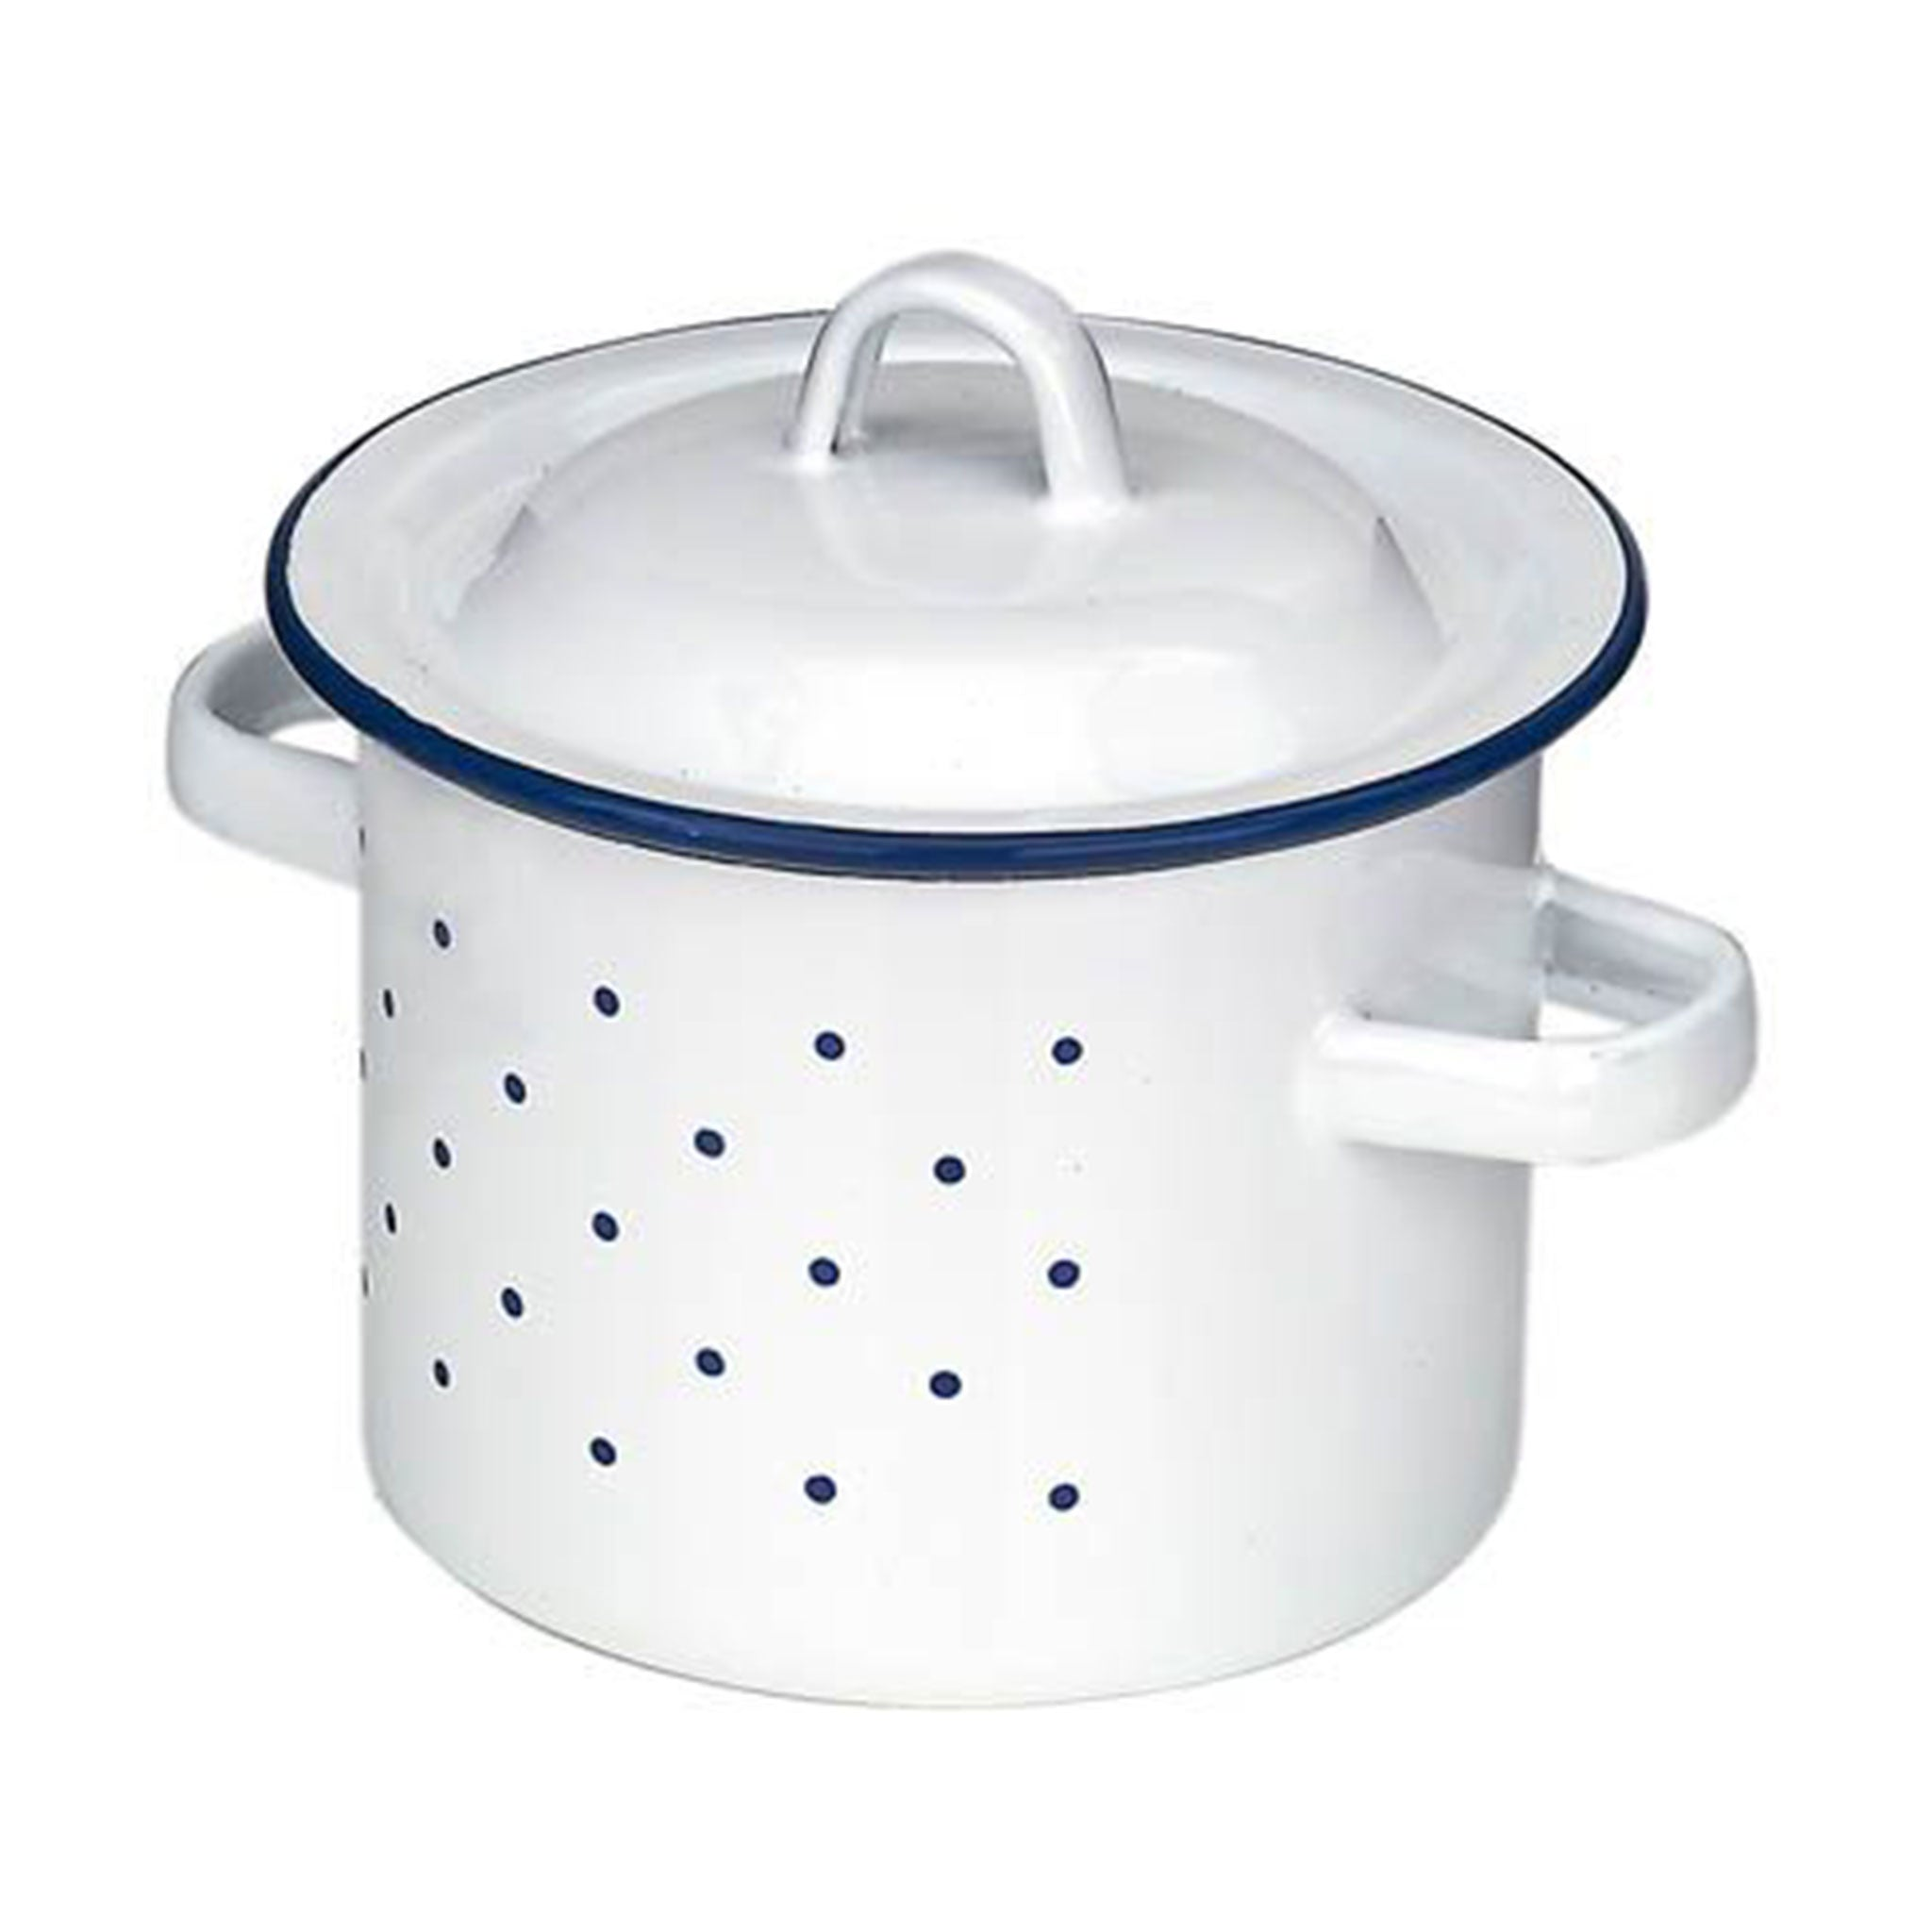 GLUCKSKAFER | Enamel Pot High |  Three Sizes